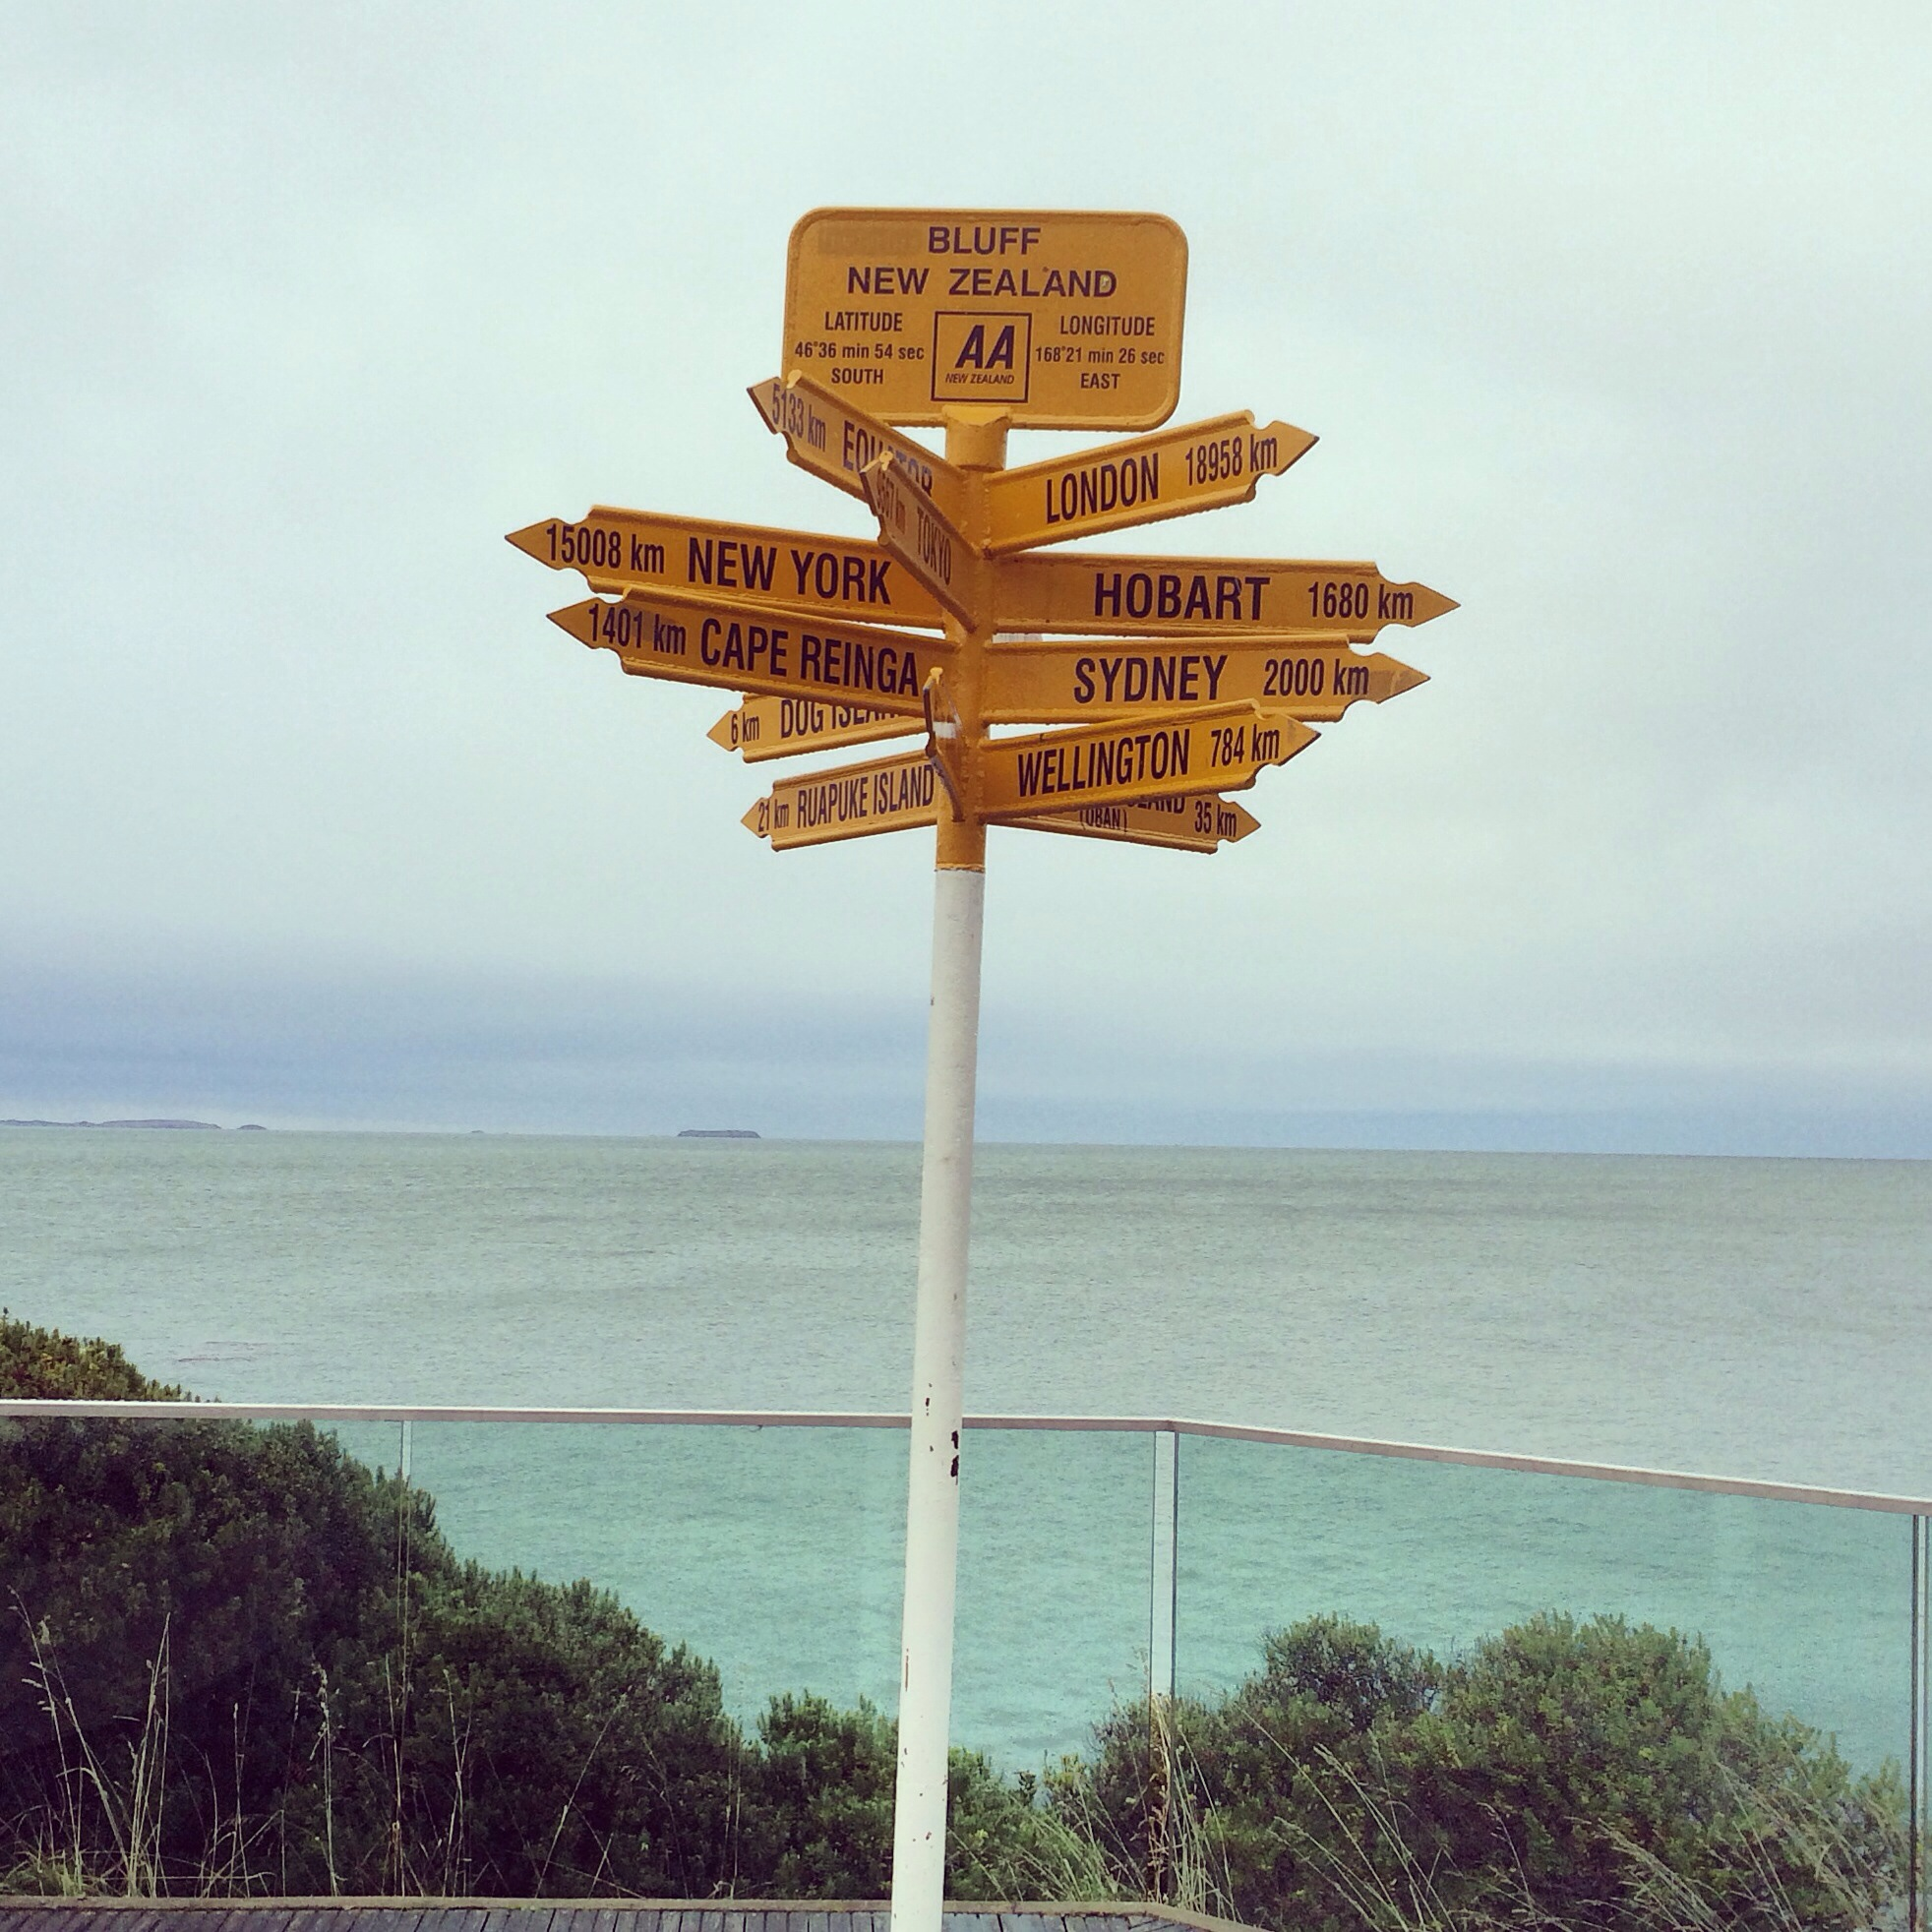 The southern most tip of the South Island of New Zealand in the town of Bluff- scary enough, the South Pole is 1/3 the distance from Bluff (5K KM) than New York City (15K KM)